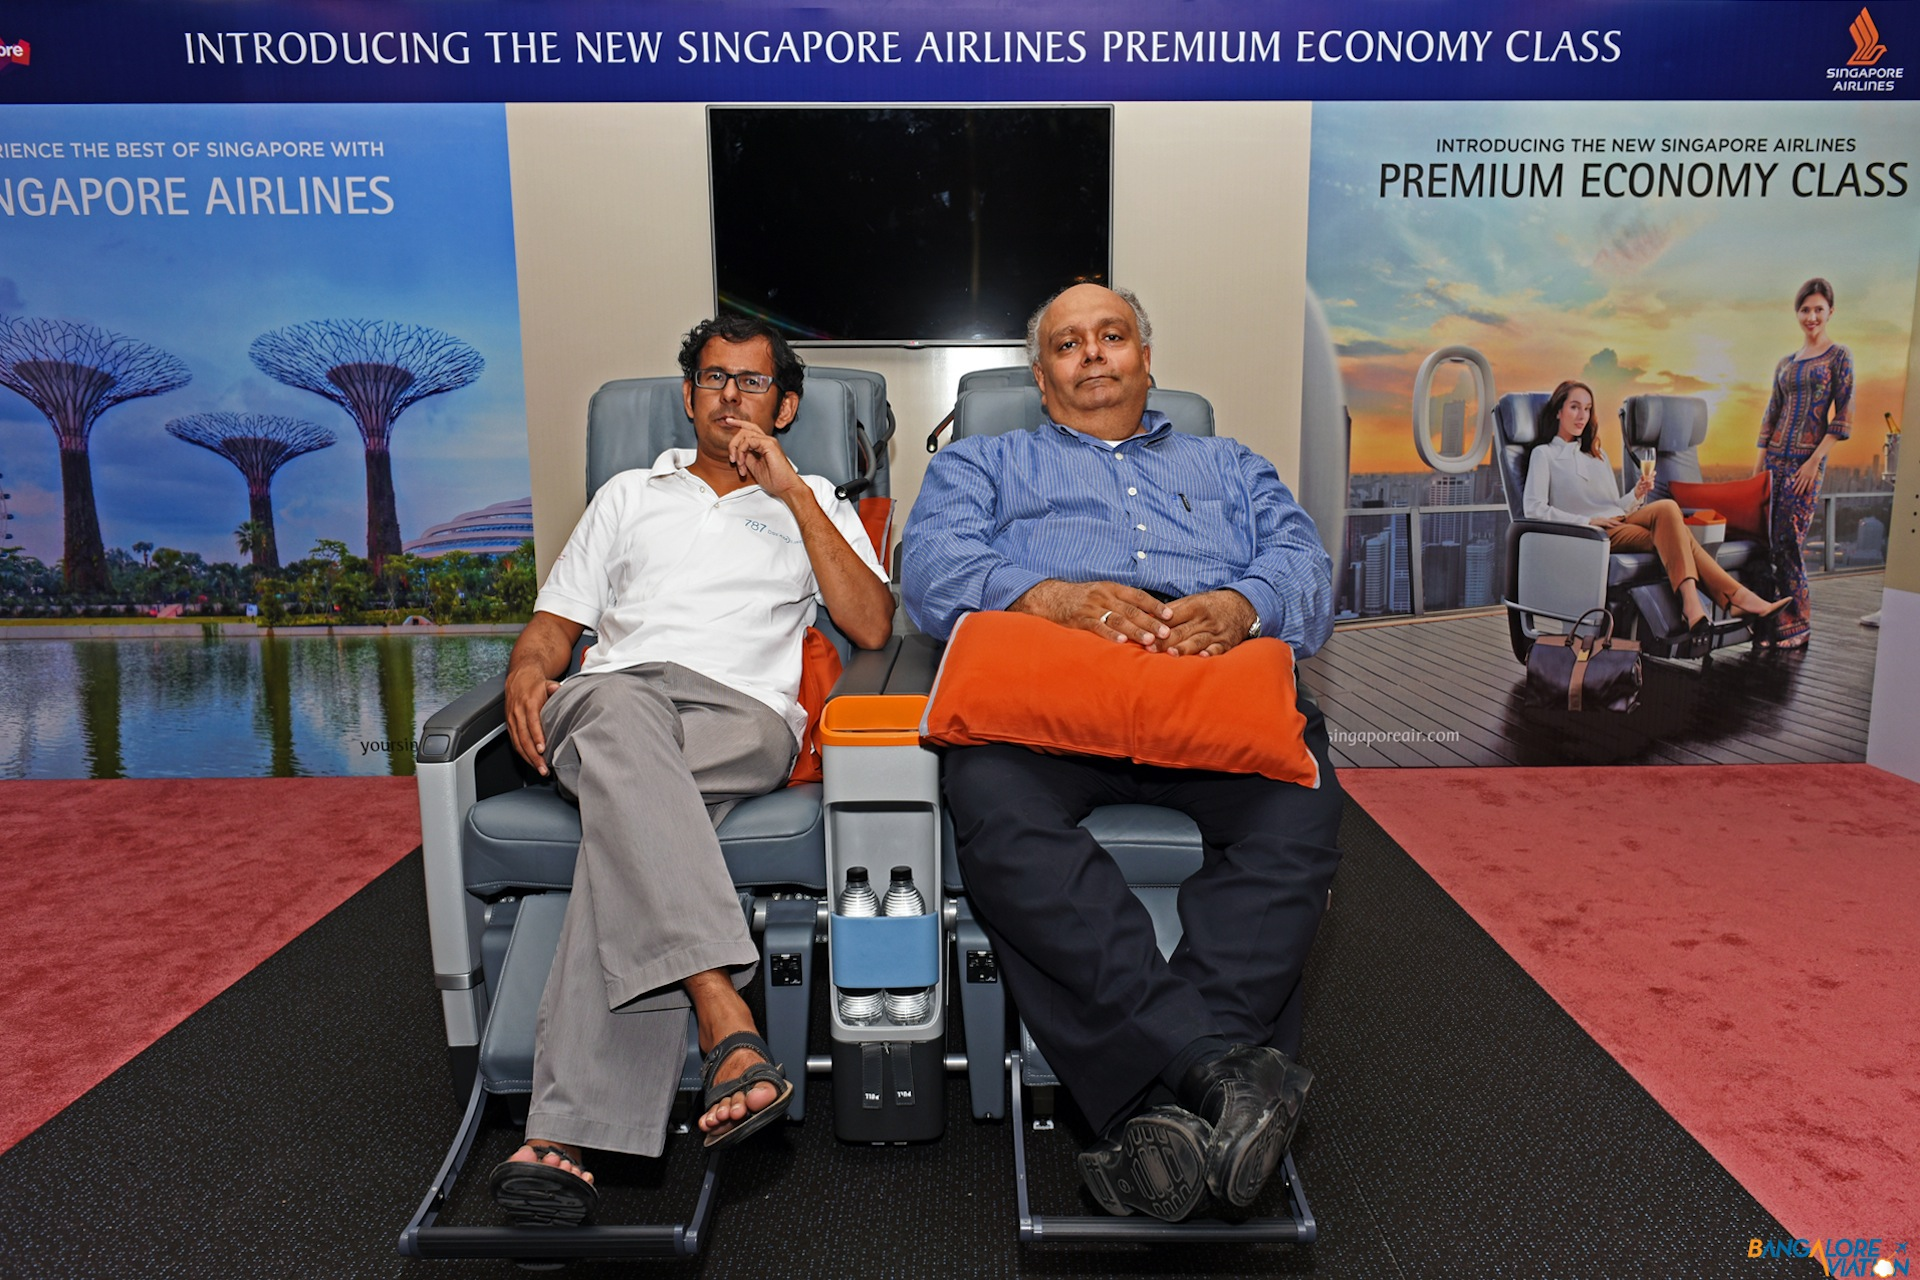 Devesh Agarwal along with another reporter in the Singapore Airlines premium economy class seat